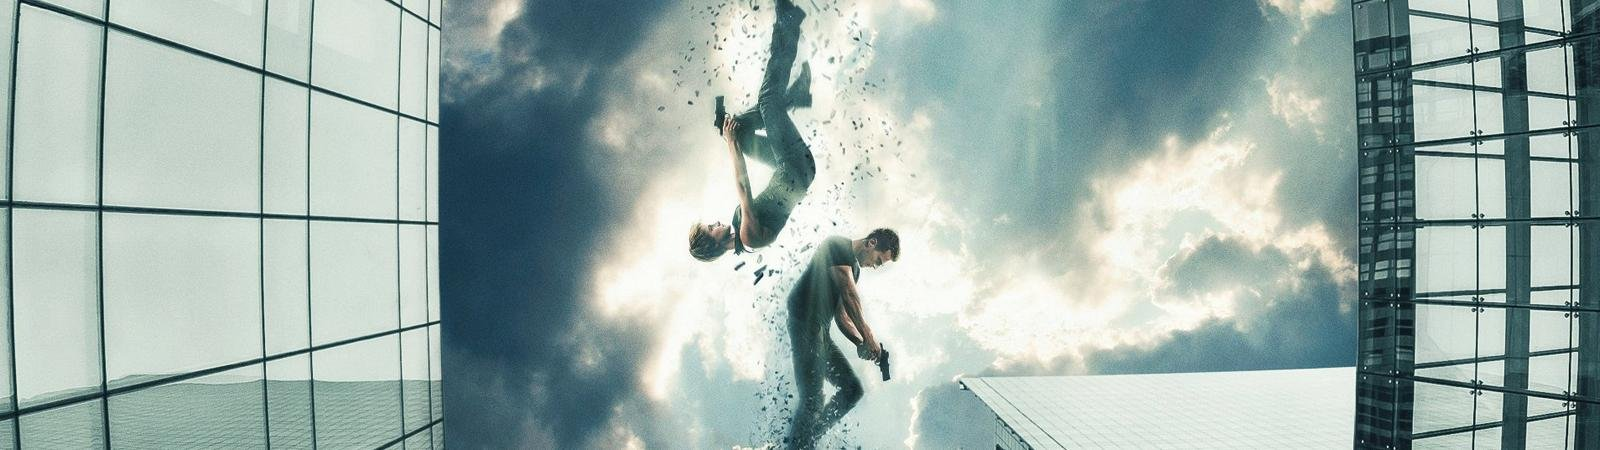 Photo du film : Divergente 2 : l'insurrection